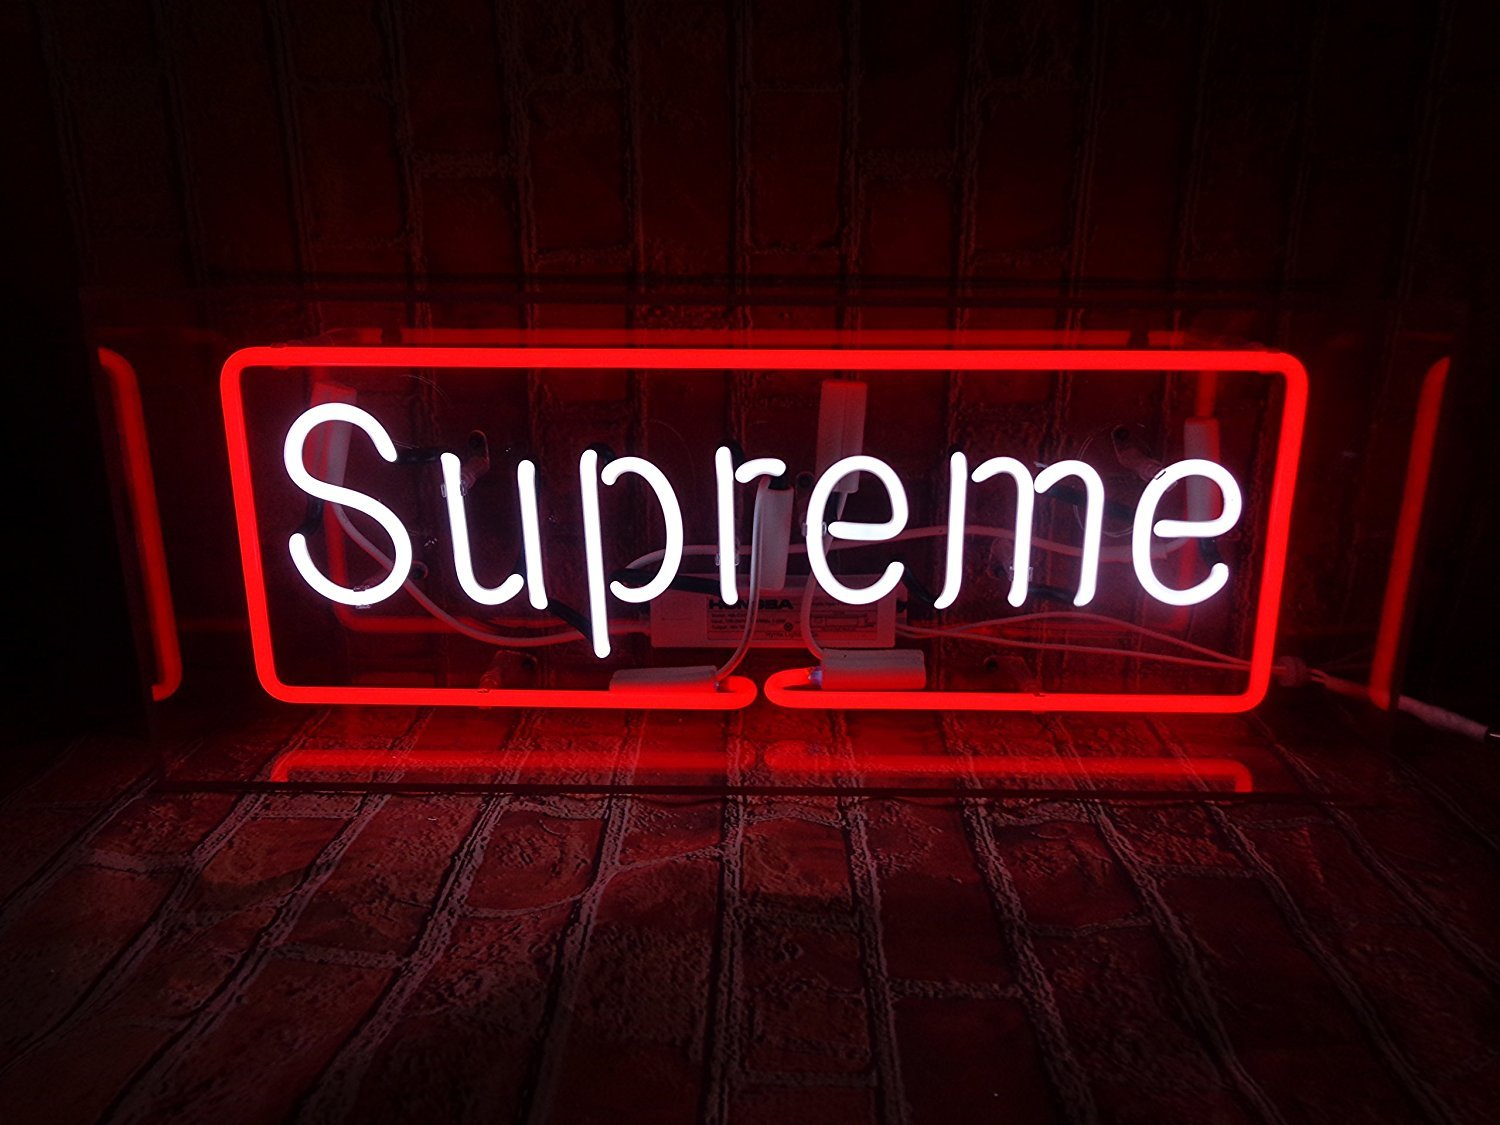 Desung Brand New 17'' S upreme (Various sizes) CUSTOM Design Decorated Acrylic Panel Handmade Man Cave Neon Sign Light UT92